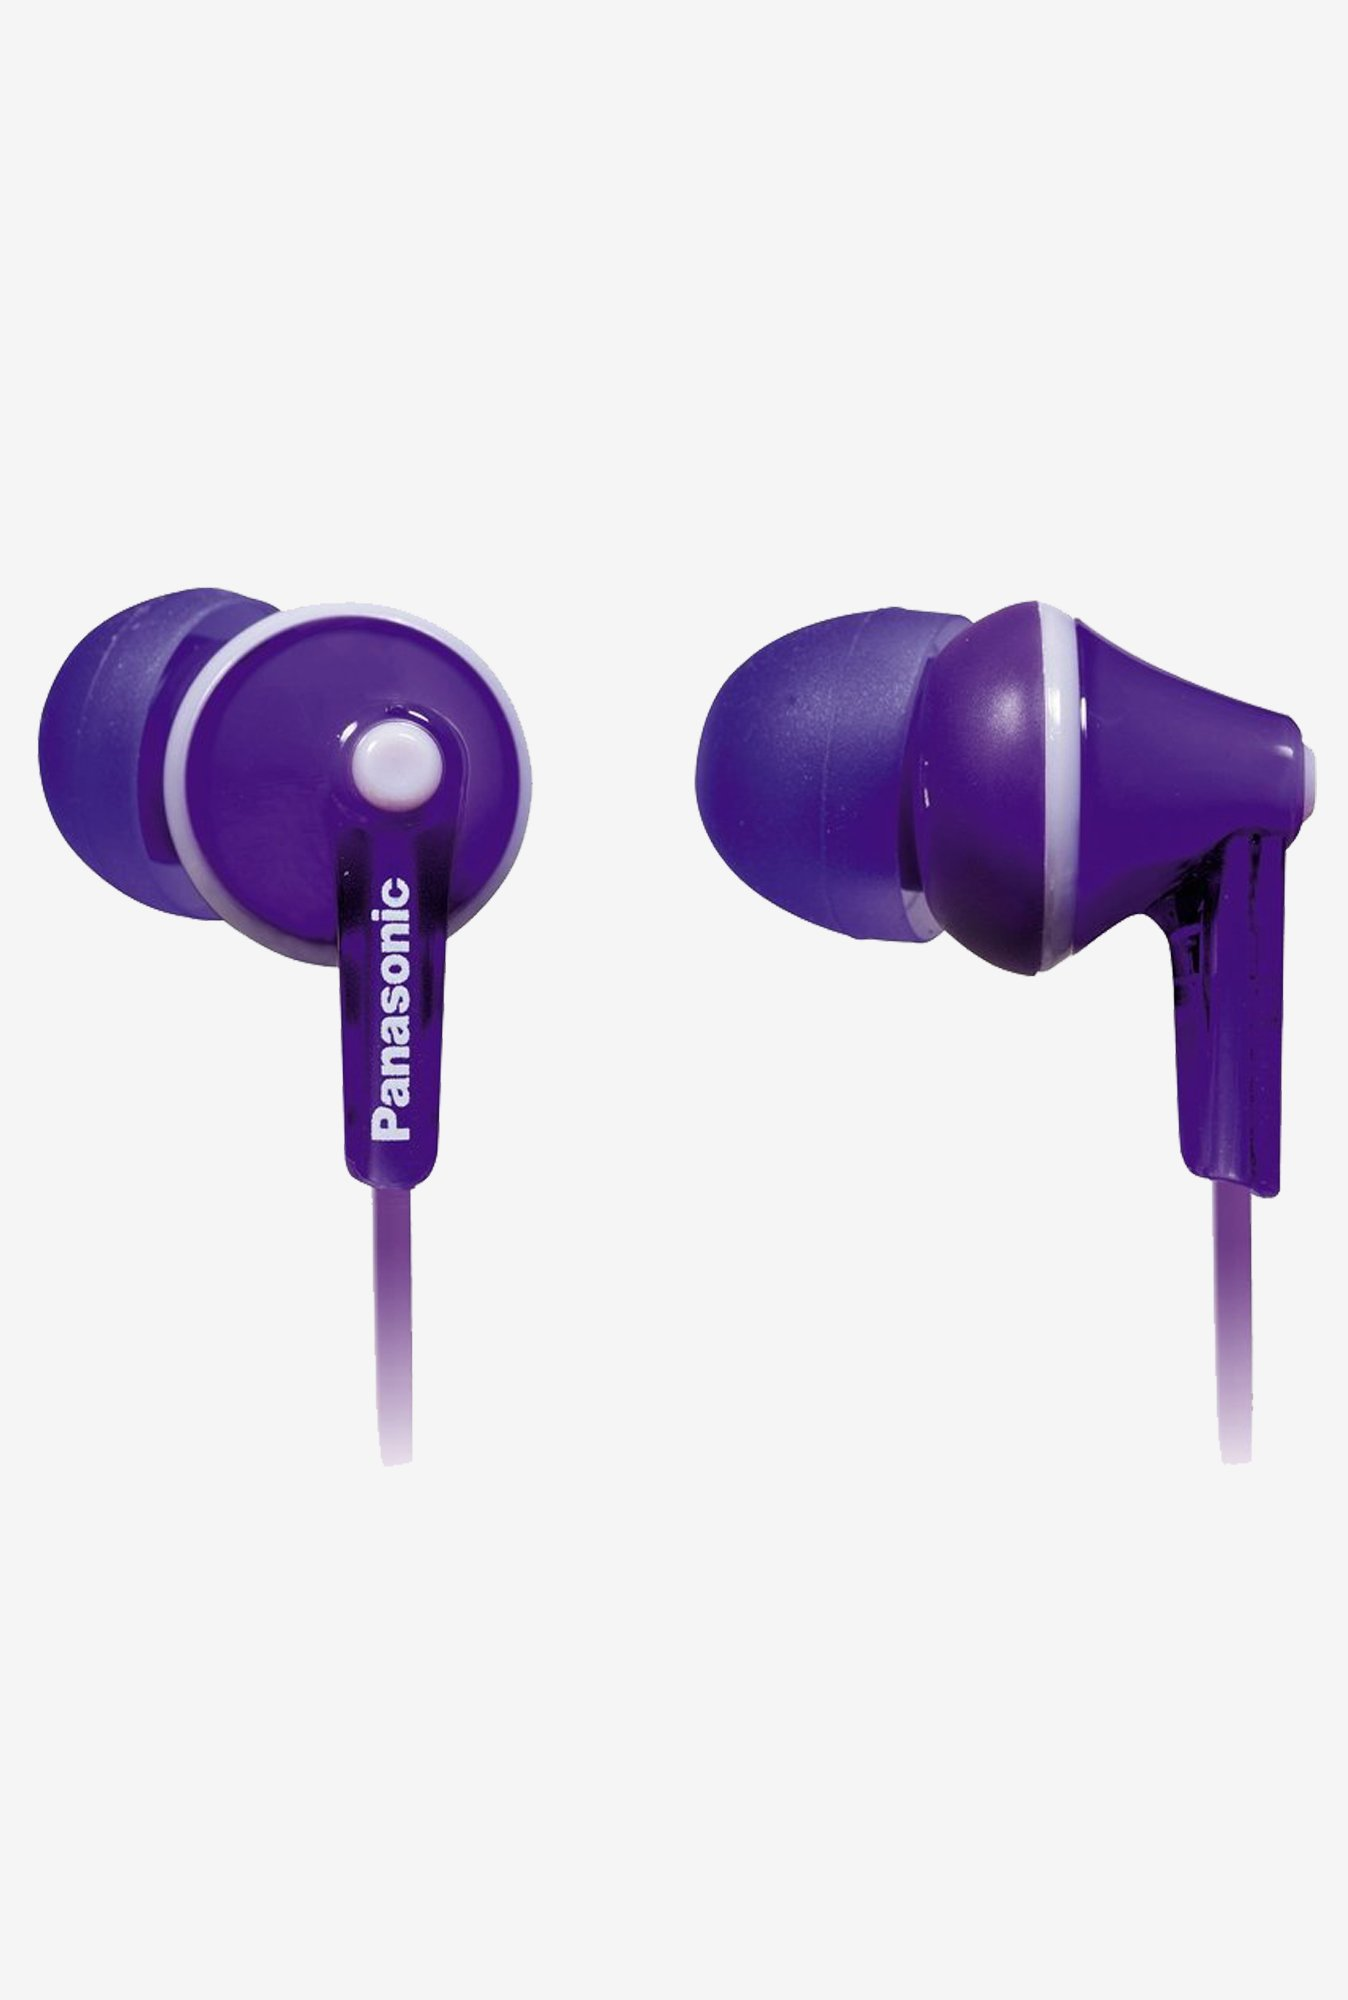 Panasonic RP-TCM125 In The Ear Headset ErgoFit (Violet)